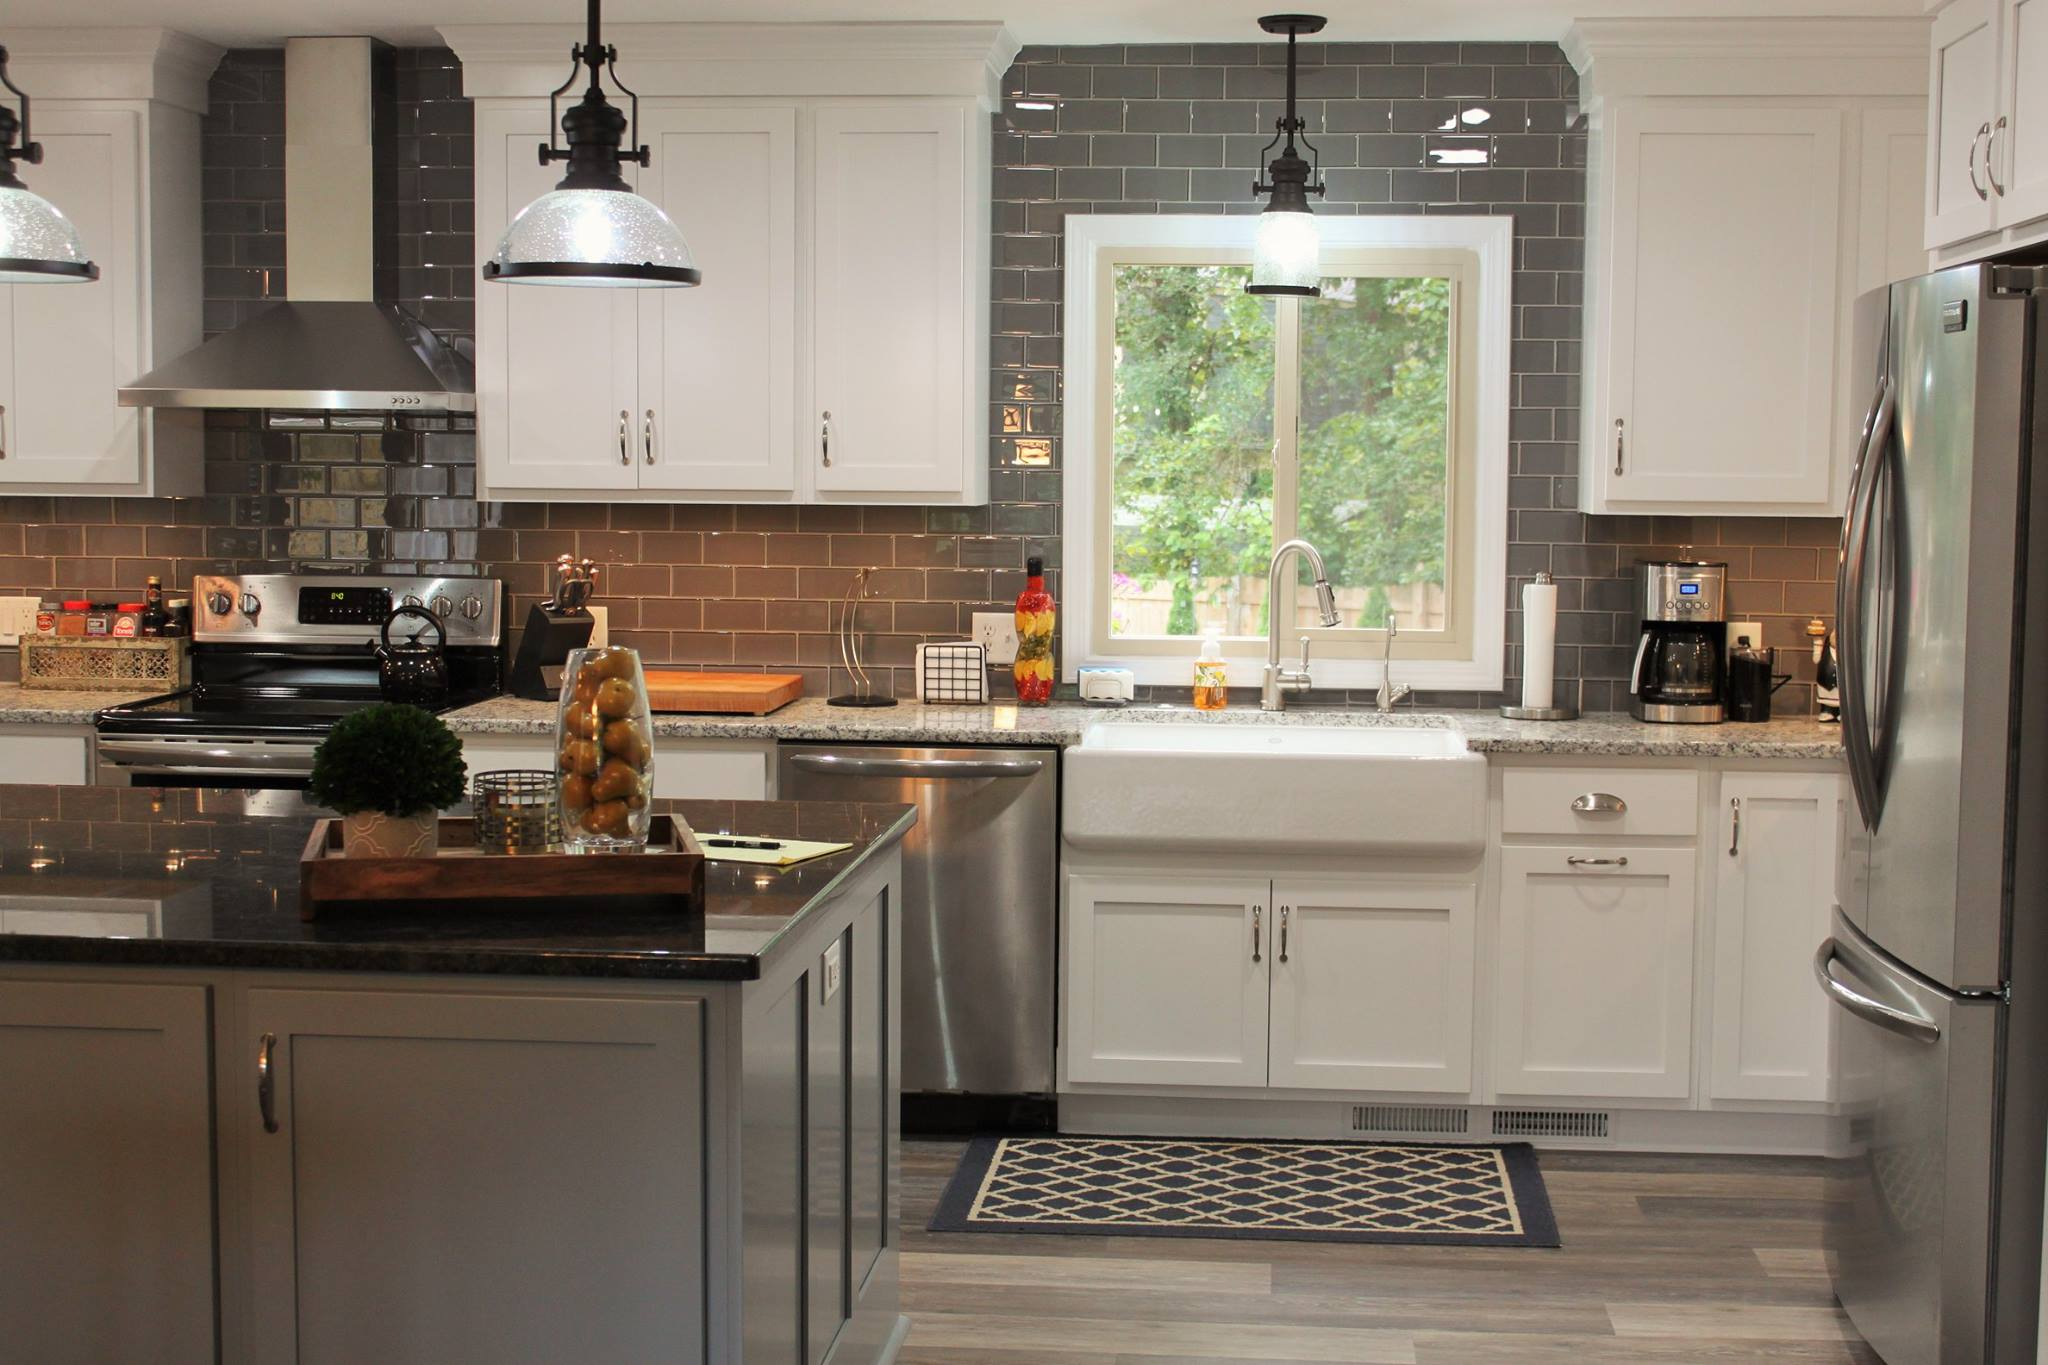 Finding the Perfect Farmhouse Sink for Your Kitchen